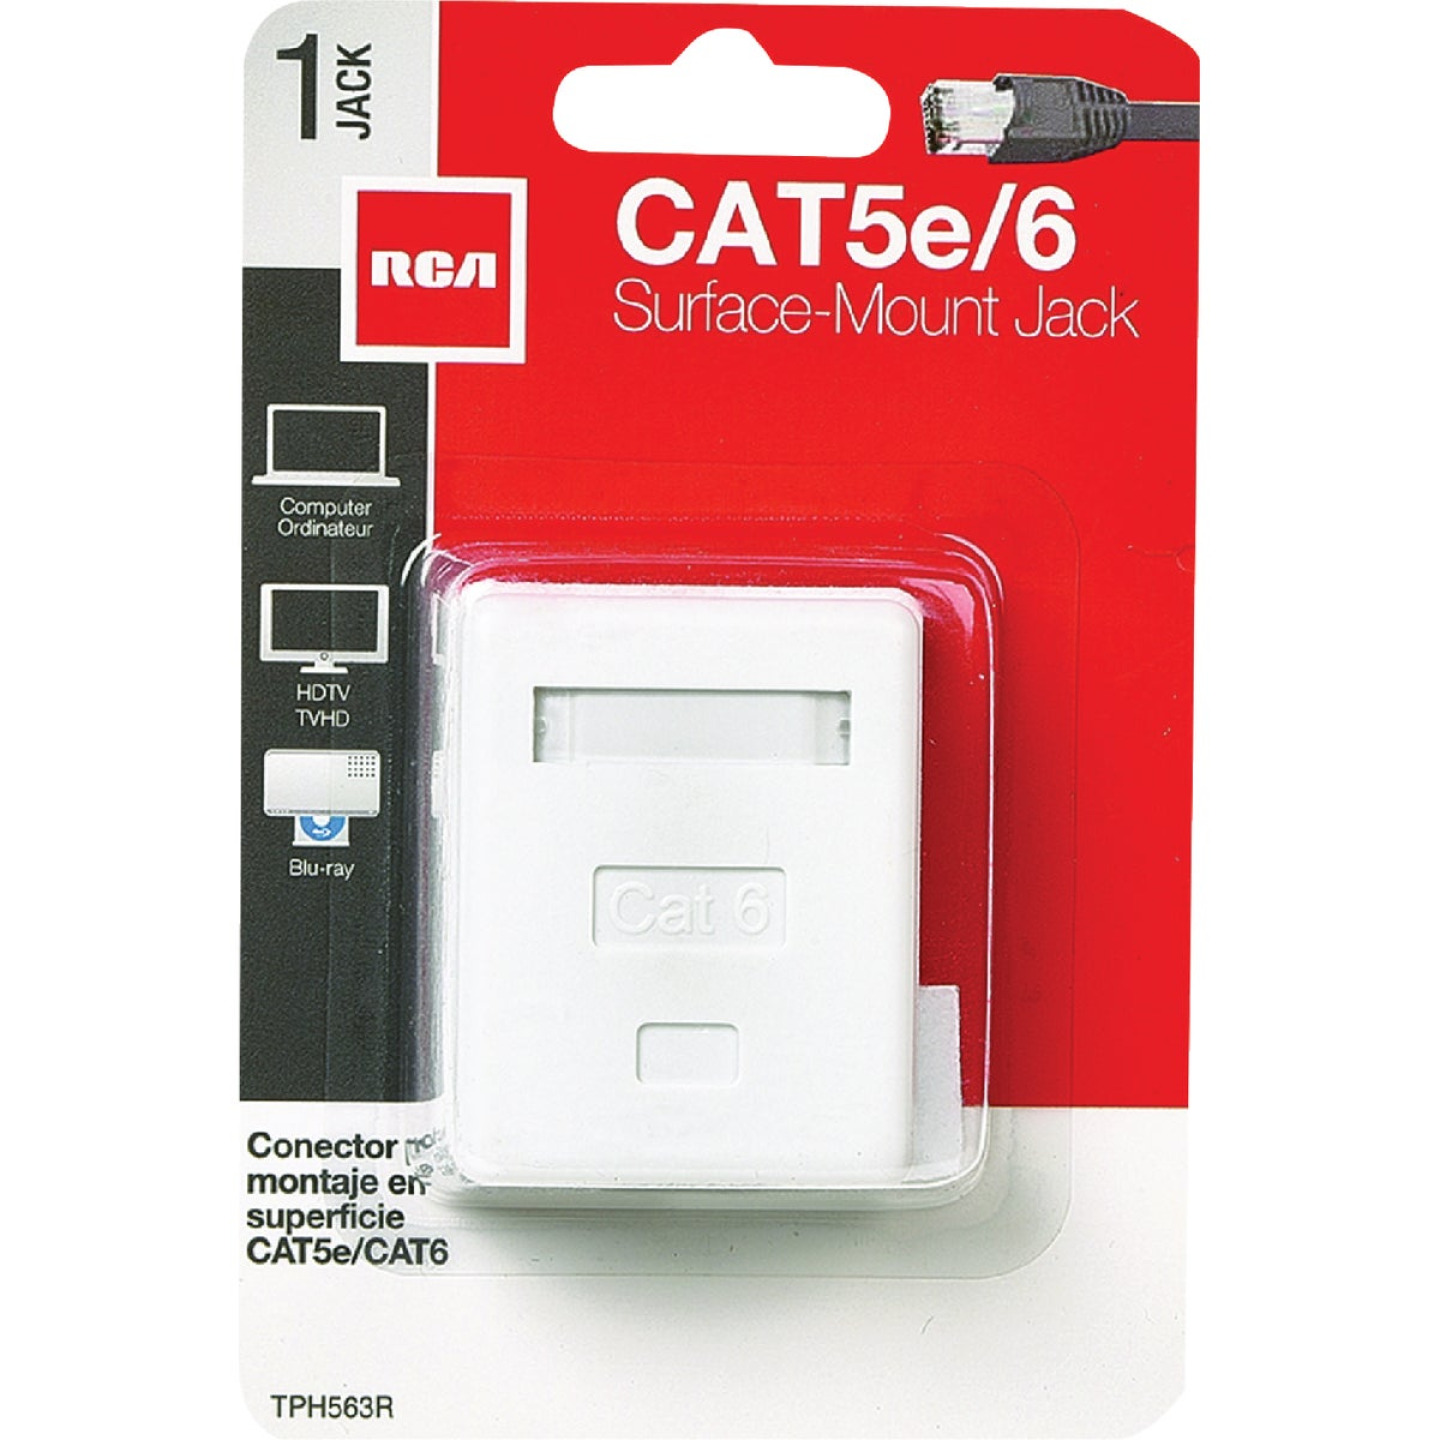 RCA White Surface Mount Plastic CAT 5E/6 Wall Jack Image 2